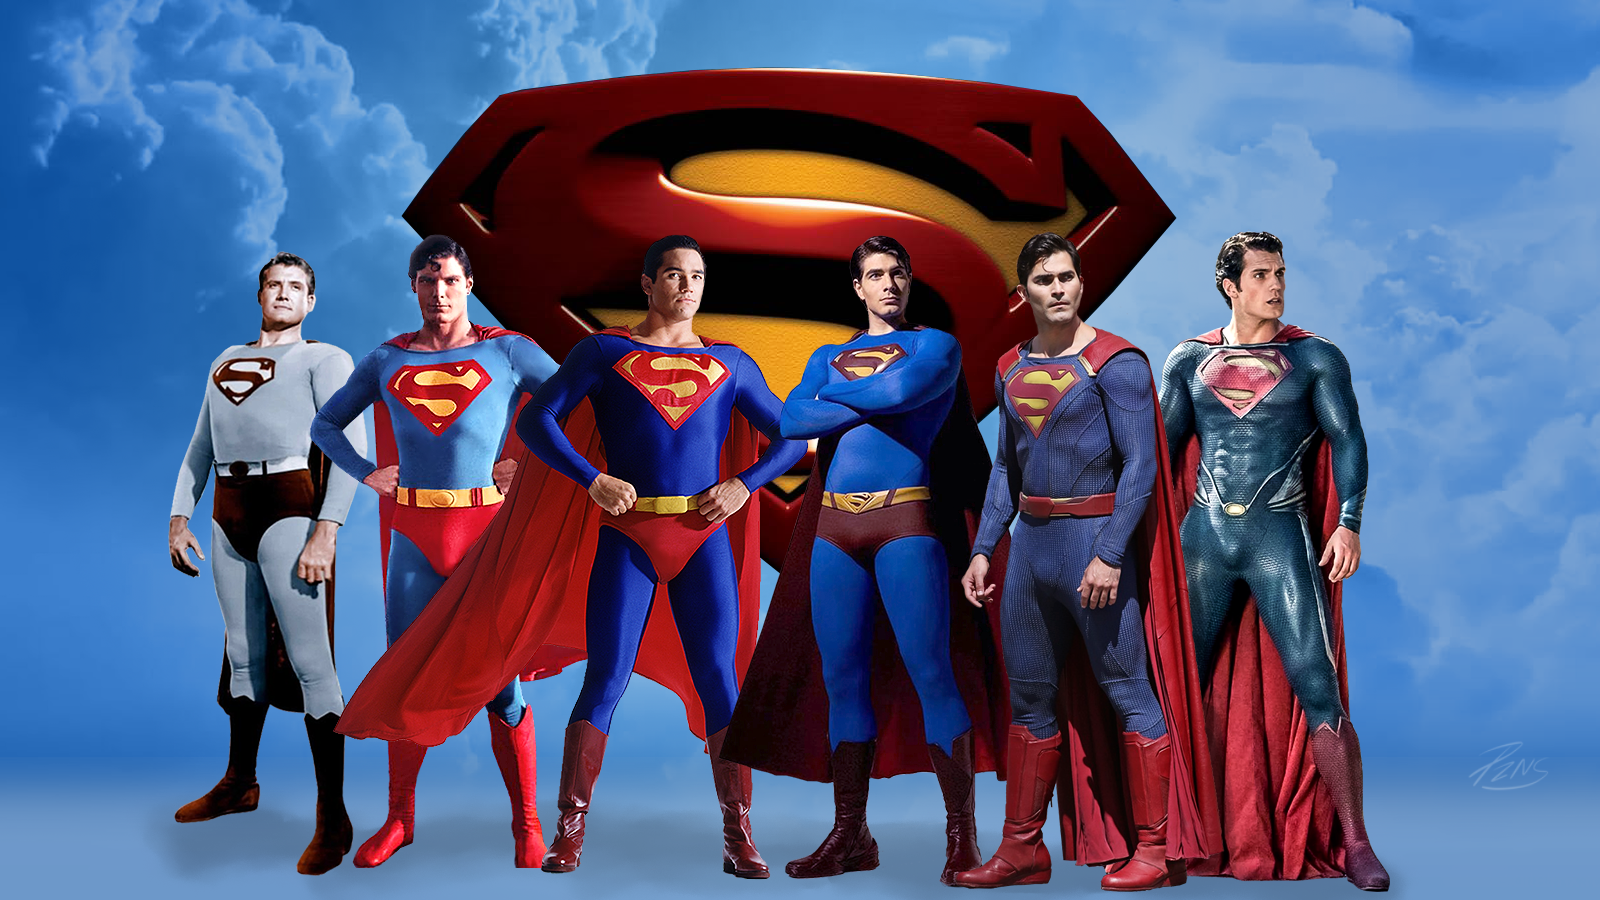 Henry Cavill Cavell Superman Who Wore It Best With George Reeves Christopher Reeve Brandon Routh